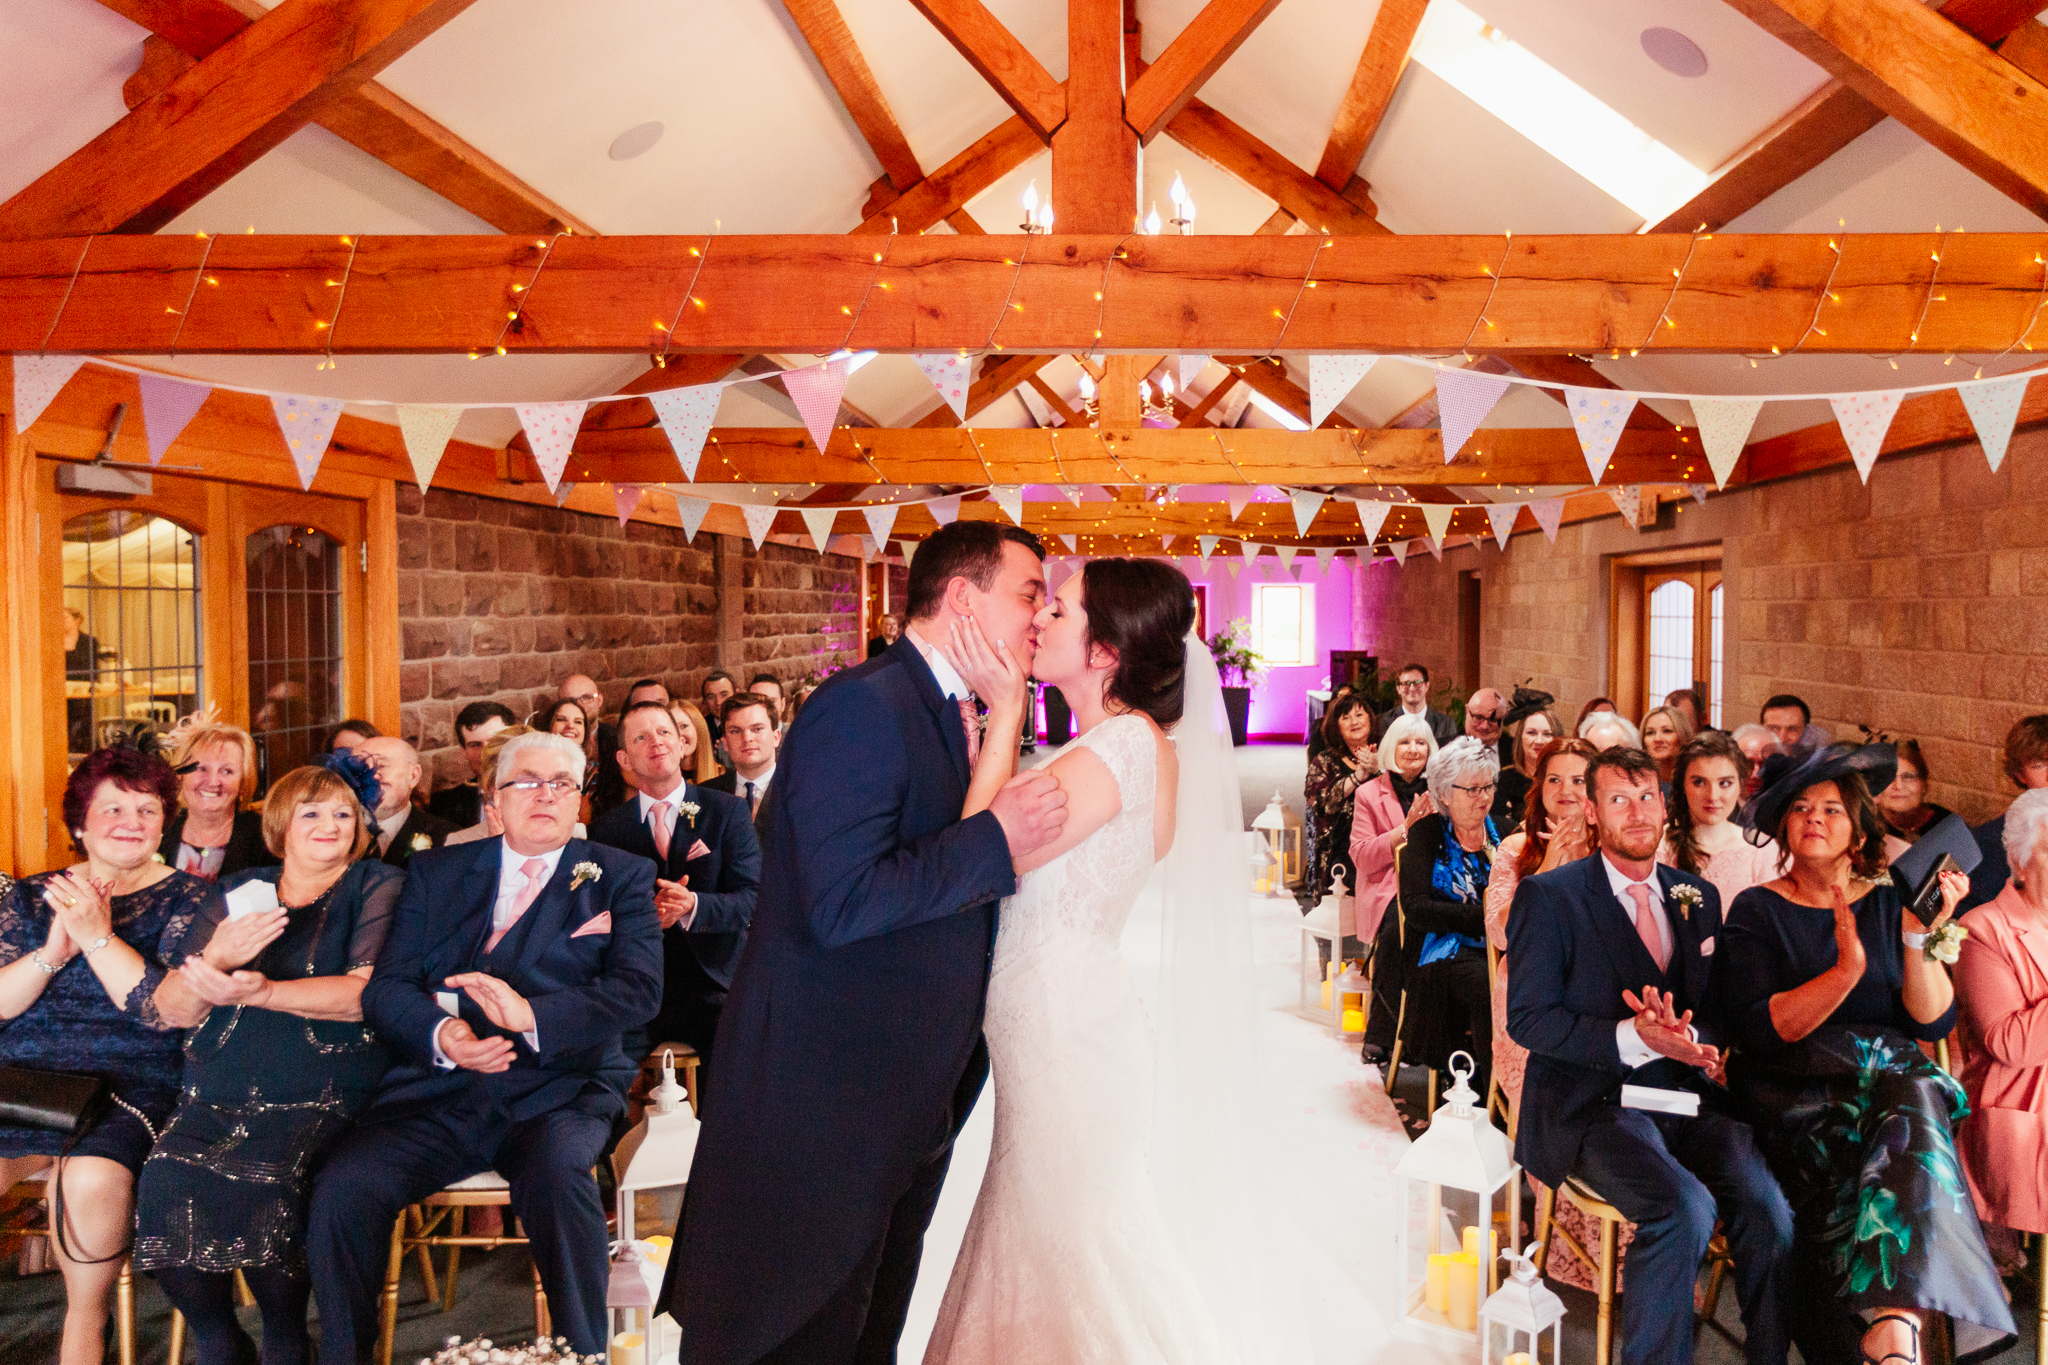 Heaton-House-Farm-Cheshire-Wedding-17.jpg